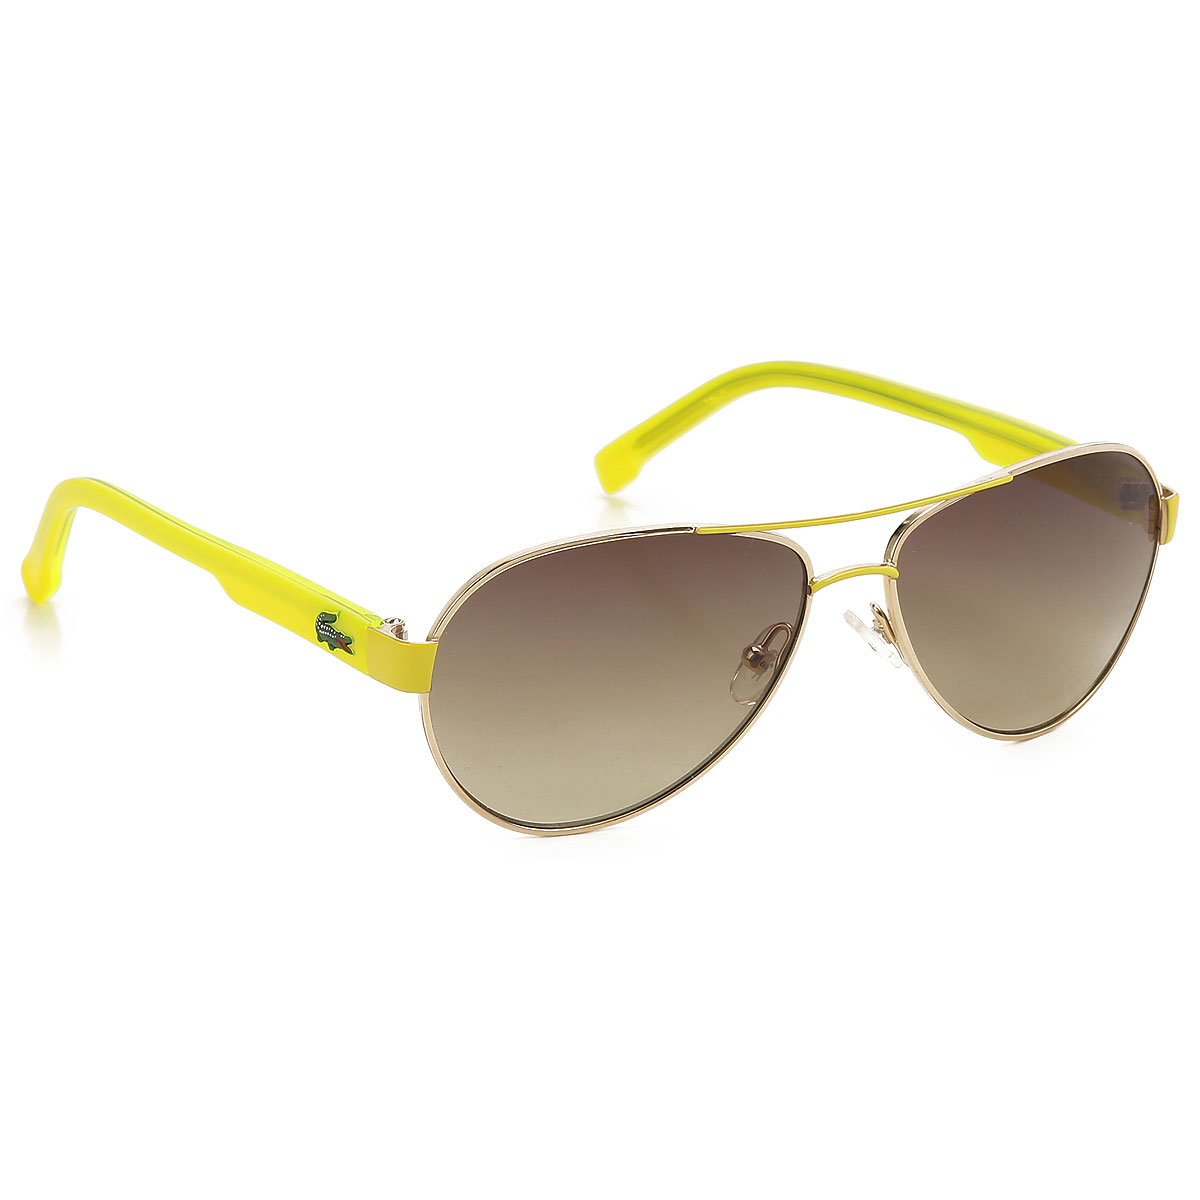 Image of Lacoste Kids Sunglasses for Boys On Sale, fluo yellow, 2017, One size one size